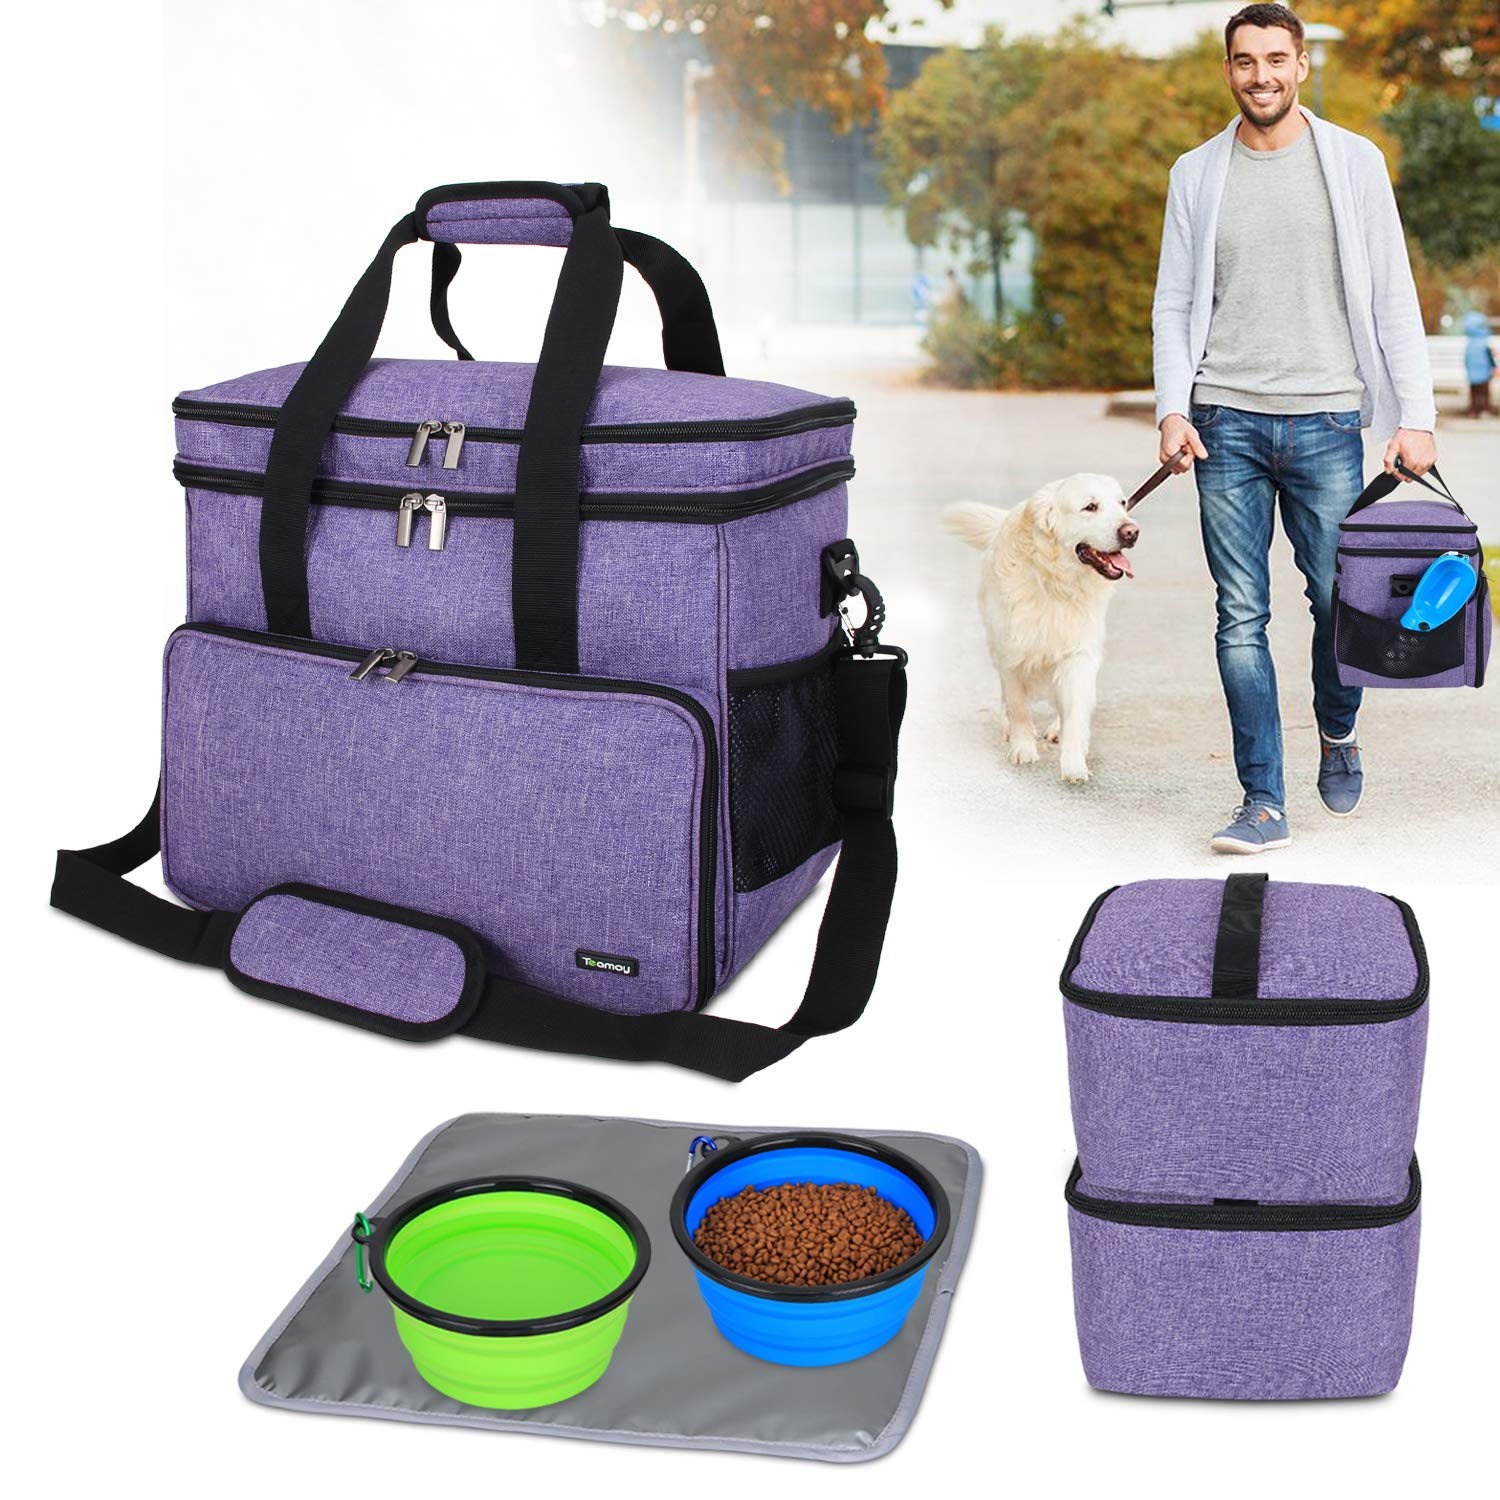 Teamoy Double Layer Dog Travel Bag with 2 Silicone Collapsible Bowls, 2 Food Carriers, 1 Water-Resistant Placemat, Pet Supplies Weekend Tote Organizer(Large, Purple) by Teamoy